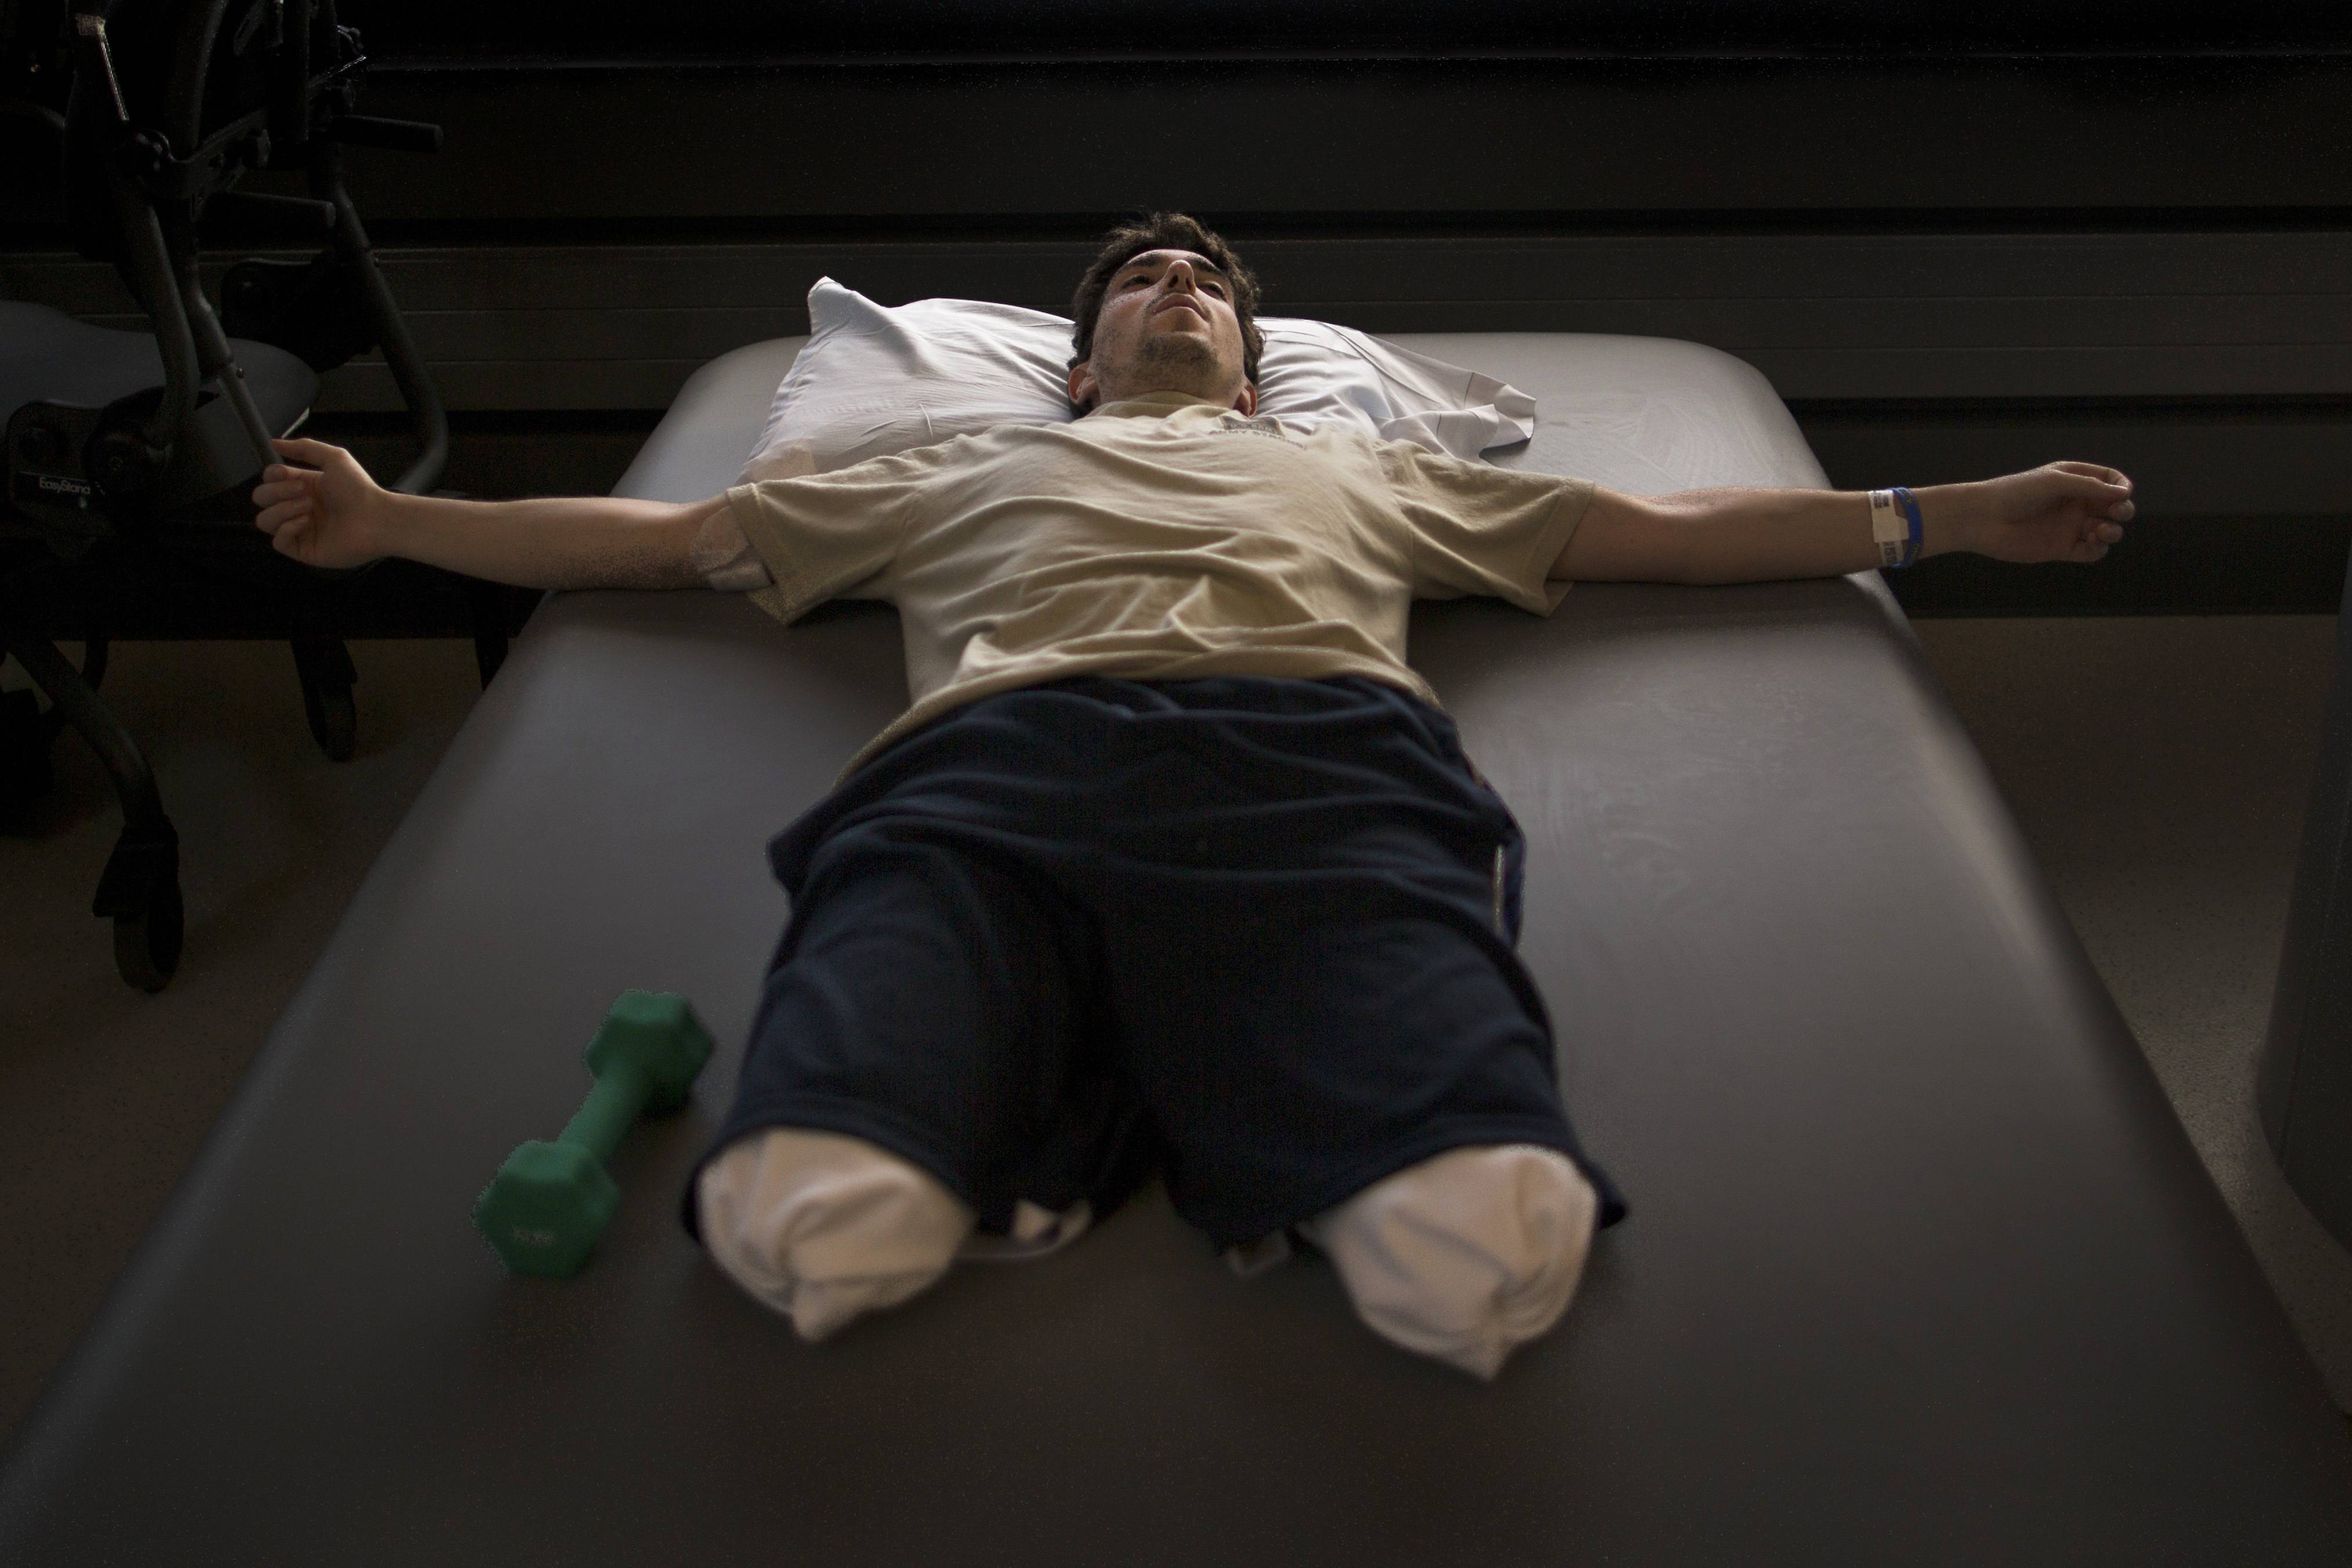 Jeff Bauman, who lost his lower legs in the Boston Marathon bombings, rests between occupational therapy sessions at Spaulding Rehabilitation Hospital in Boston, May 8, 2013. Bauman went to the Boston Marathon to see his girlfriend run, but now his supporters are watching his plight to walk again after he lost his legs in the bombing. New York Times photographer Josh Haner was awarded the 2014 Pulitzer Prize for feature photography.